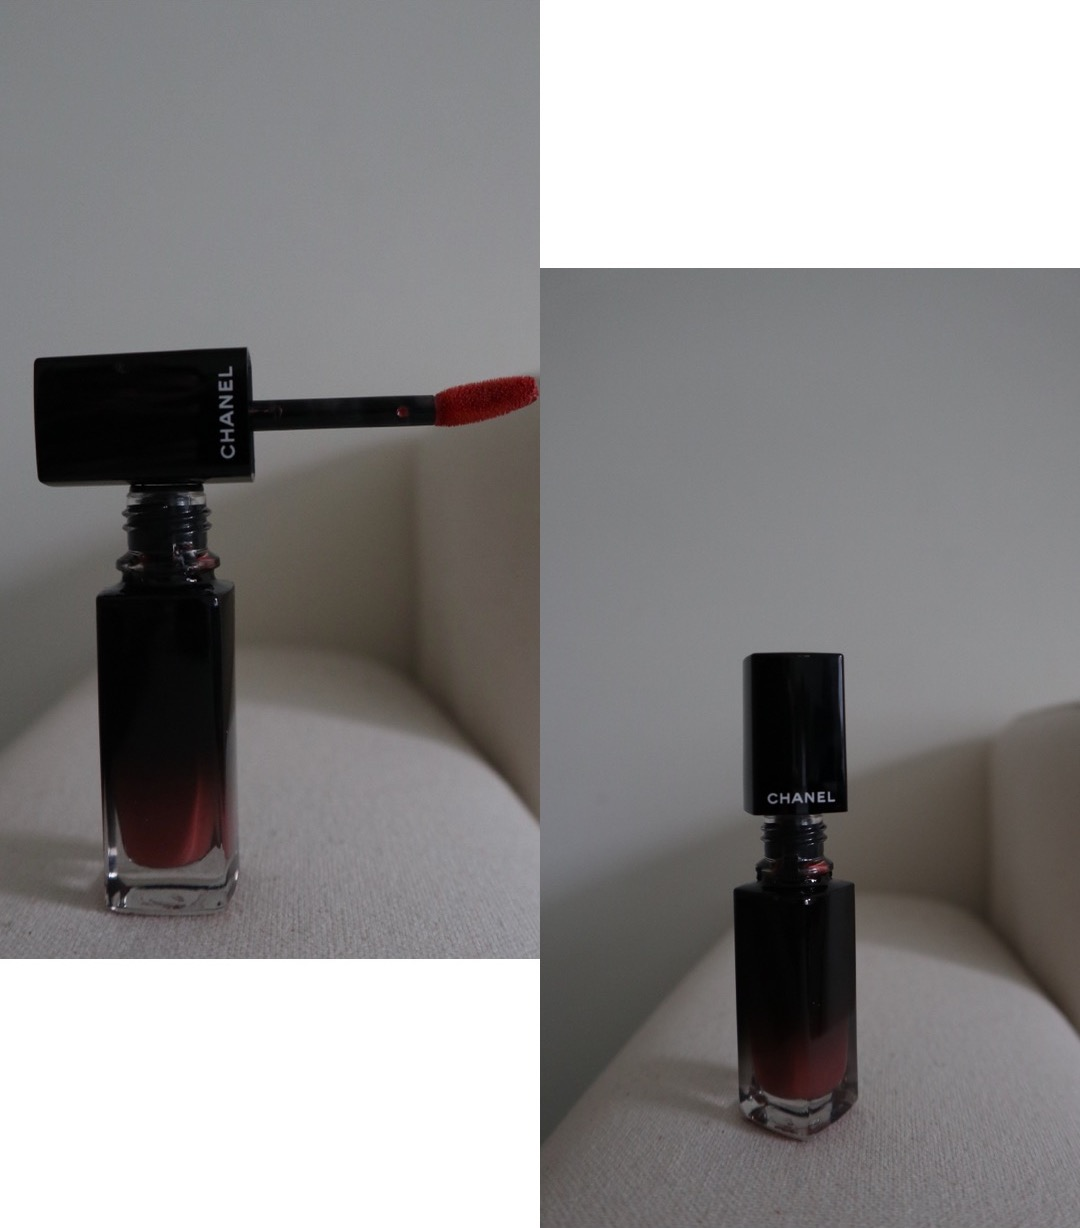 Chanel Rouge Allure Laque lipstick: A quick review